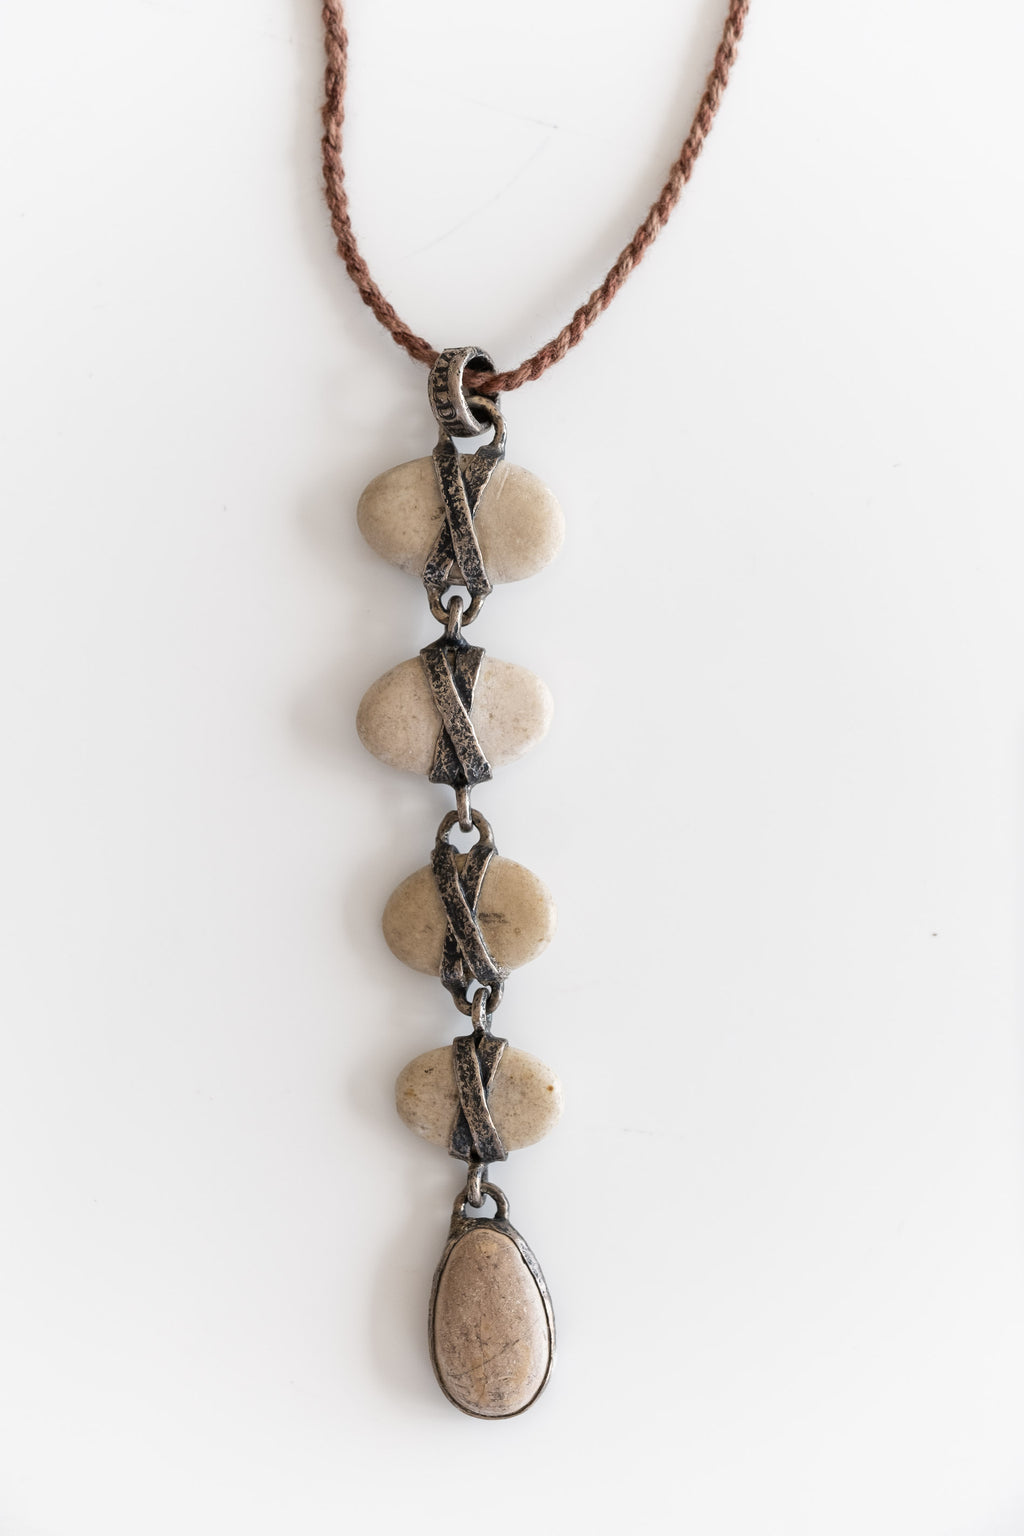 5 DROP JAPANESE PEBBLE NECKLACE